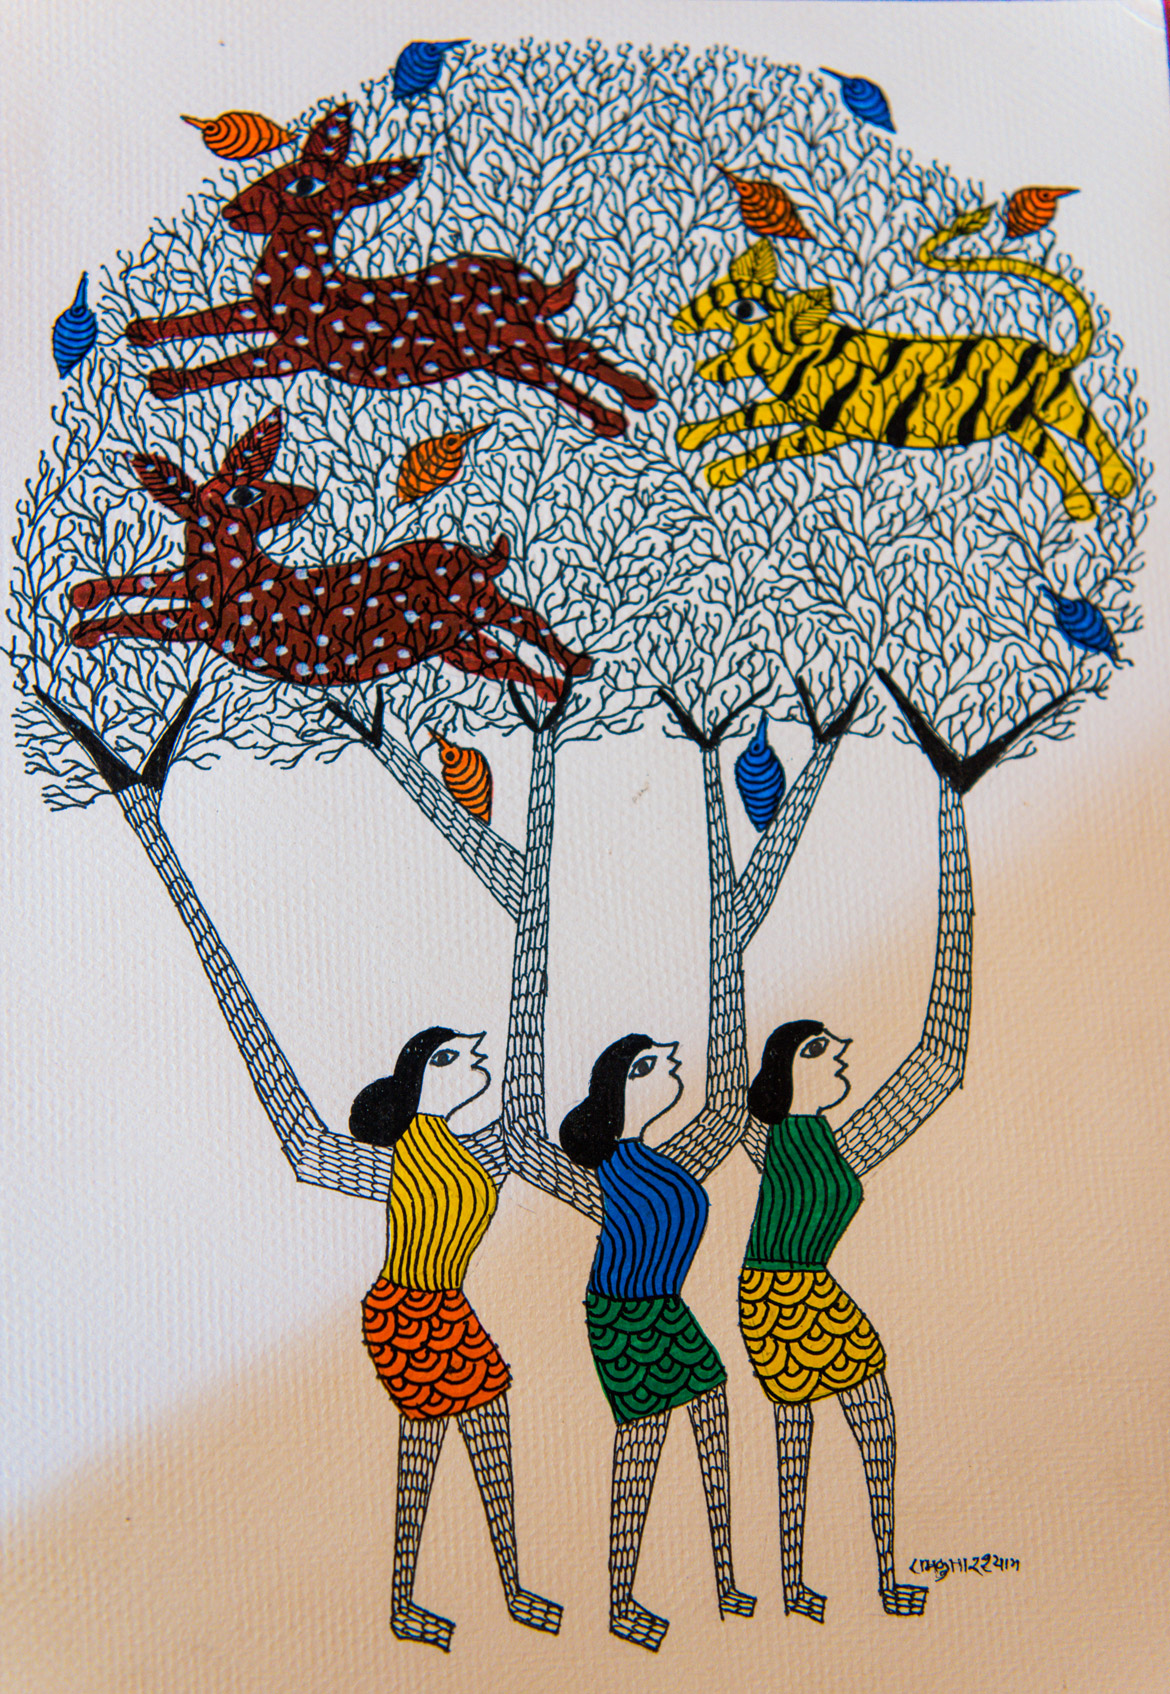 One of the paintings by Ram Kumar Shyam.